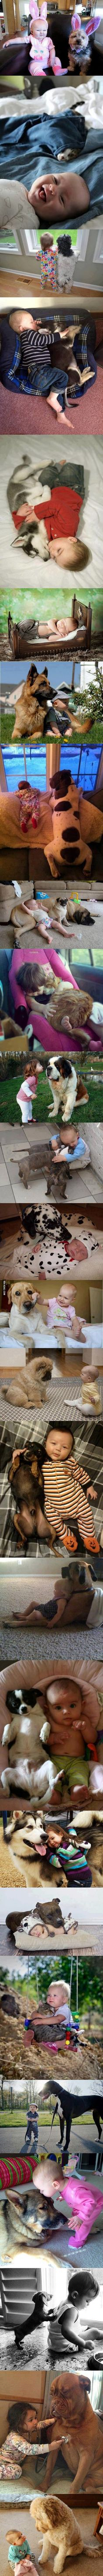 kids need pets. Too much cuteness!